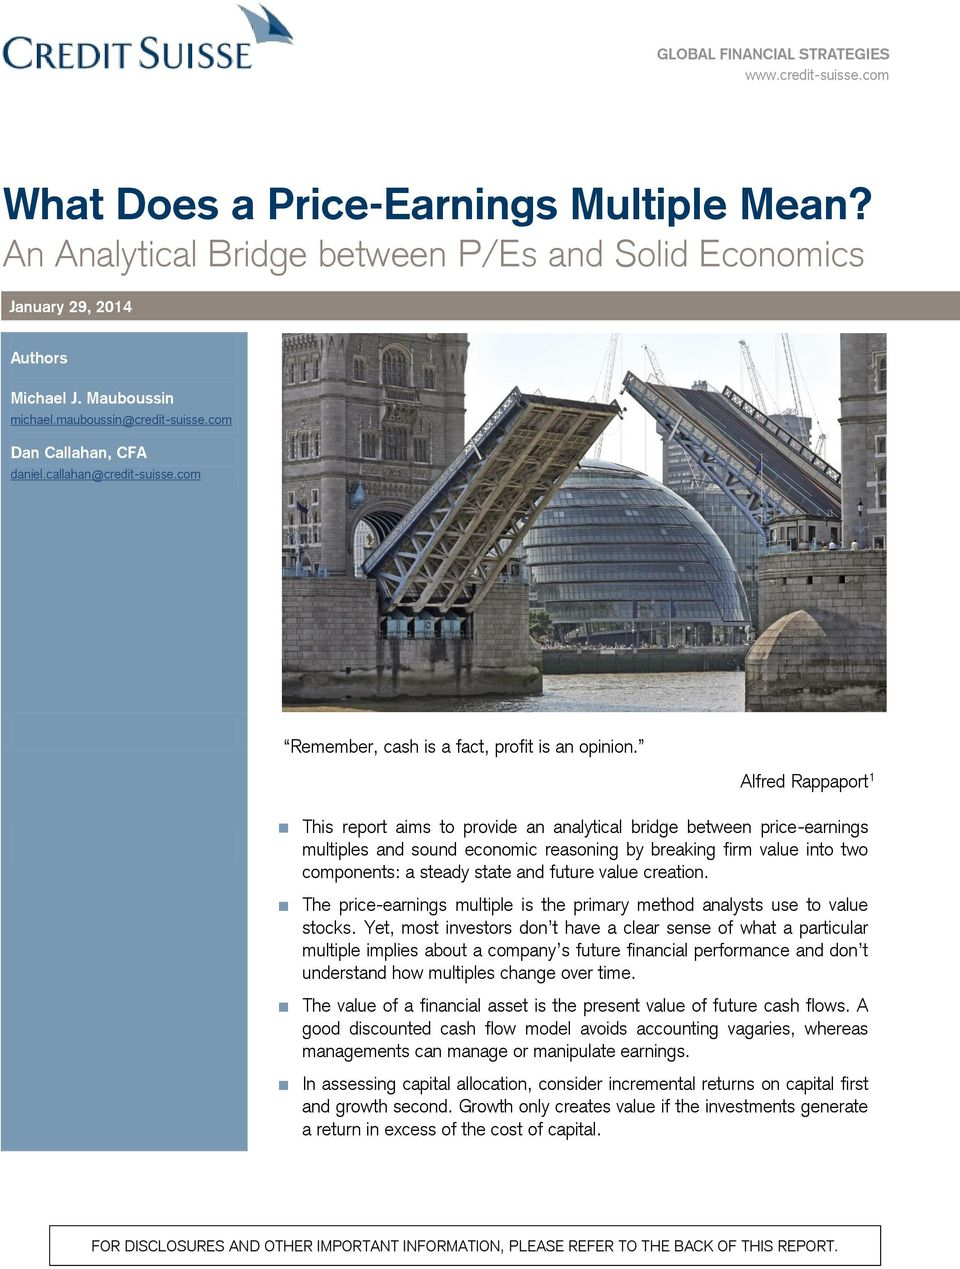 Alfred Rappaport 1 This report aims to provide an analytical bridge between price-earnings multiples and sound economic reasoning by breaking firm value into two components: a steady state and future